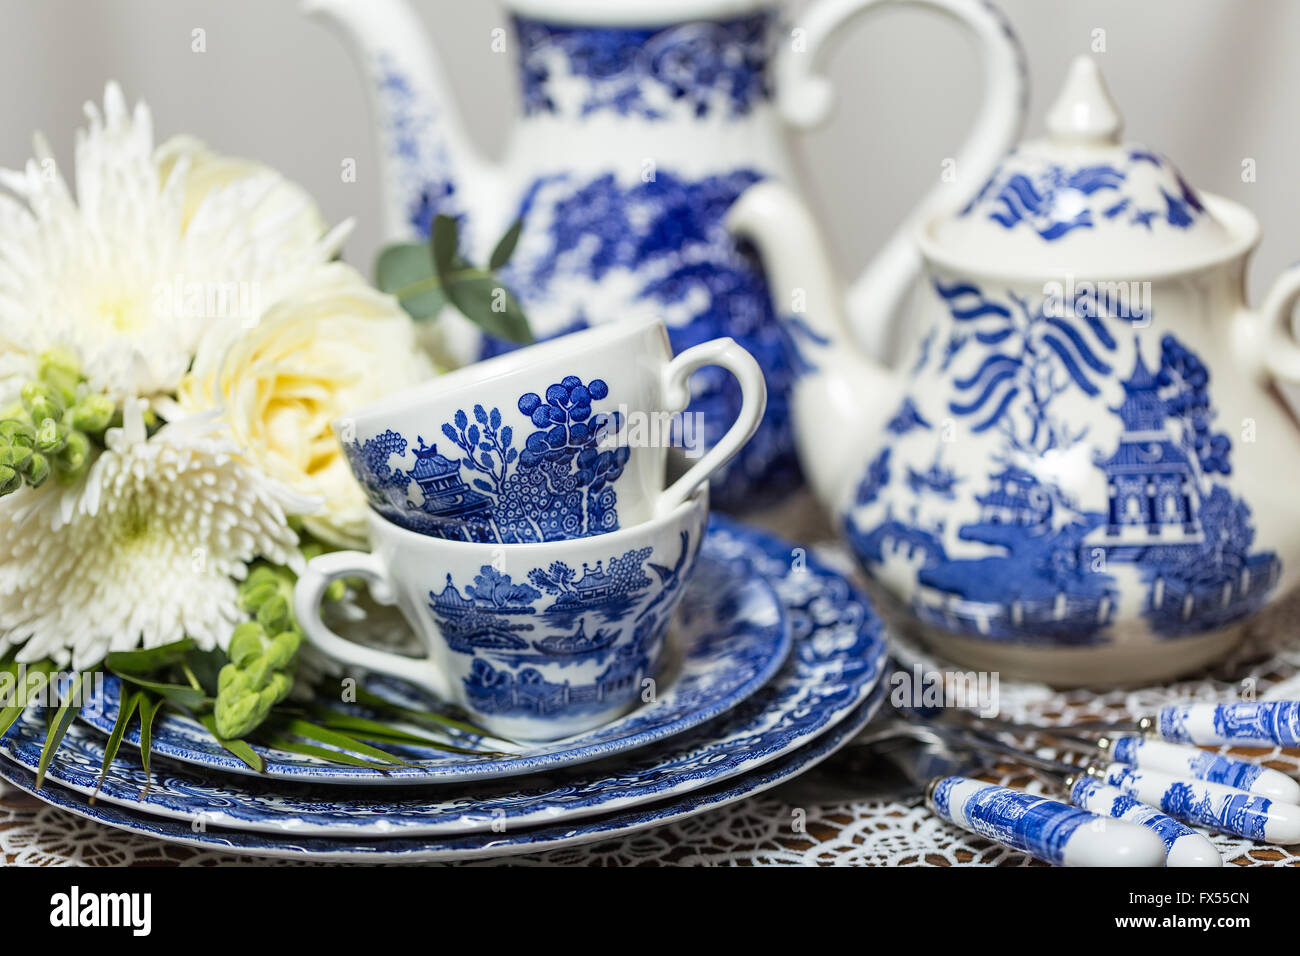 blue and white transferware spode willow pattern tea set